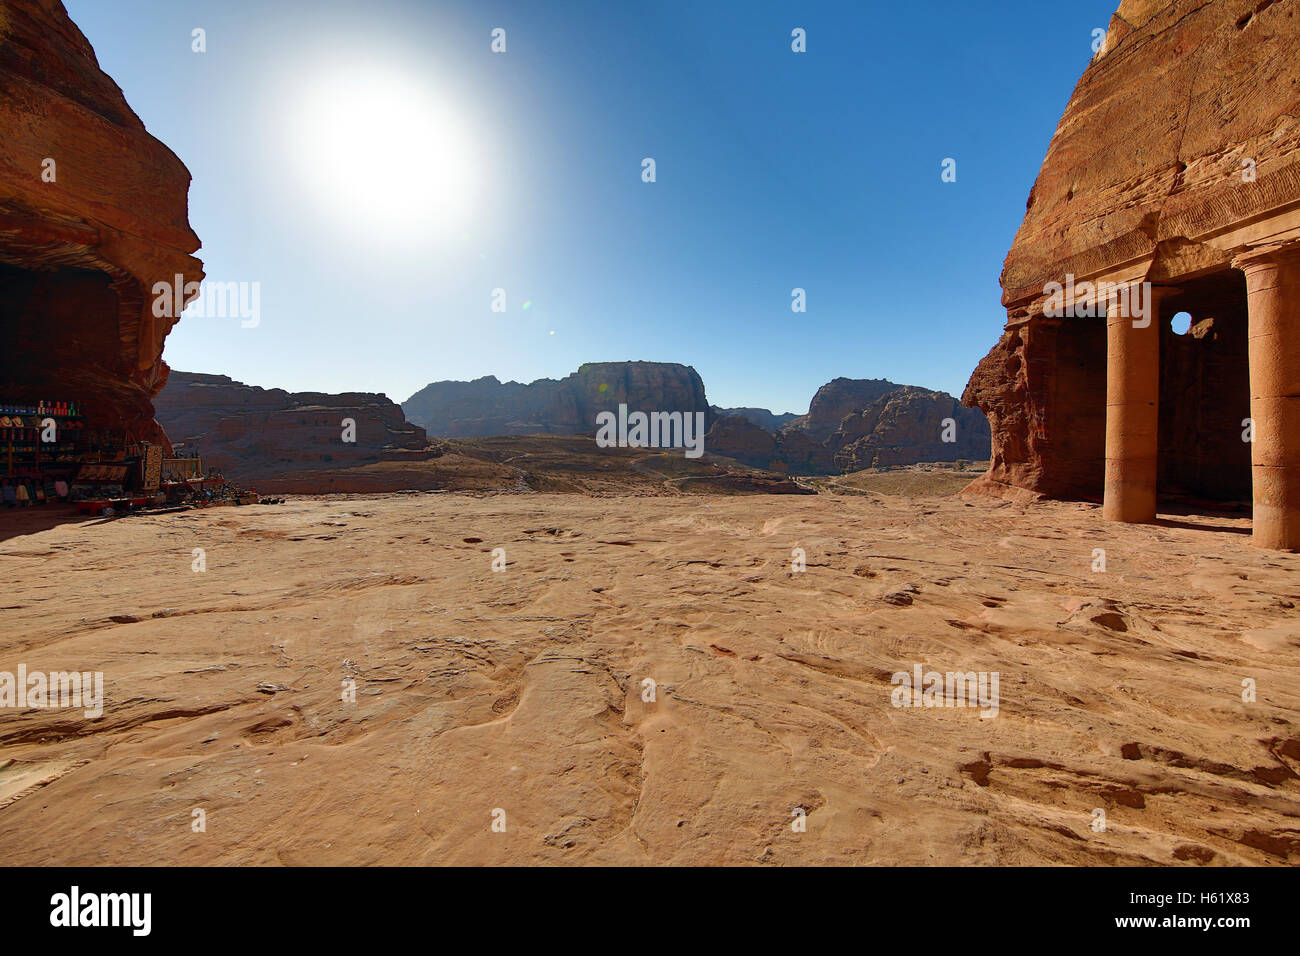 View from the Urn Tomb of the Royal Tombs in the rock city of Petra, Jordan Stock Photo